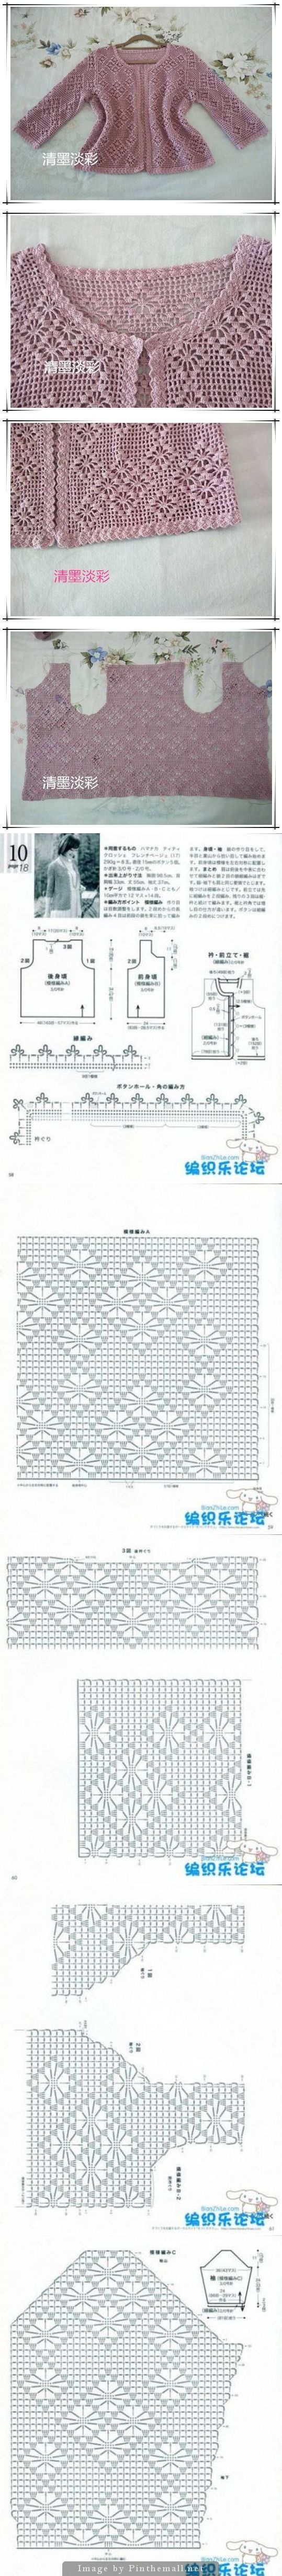 Filet crochet lace jacket with spider design ~~ http://www.liveinternet.ru/users/4729689/post339877732/